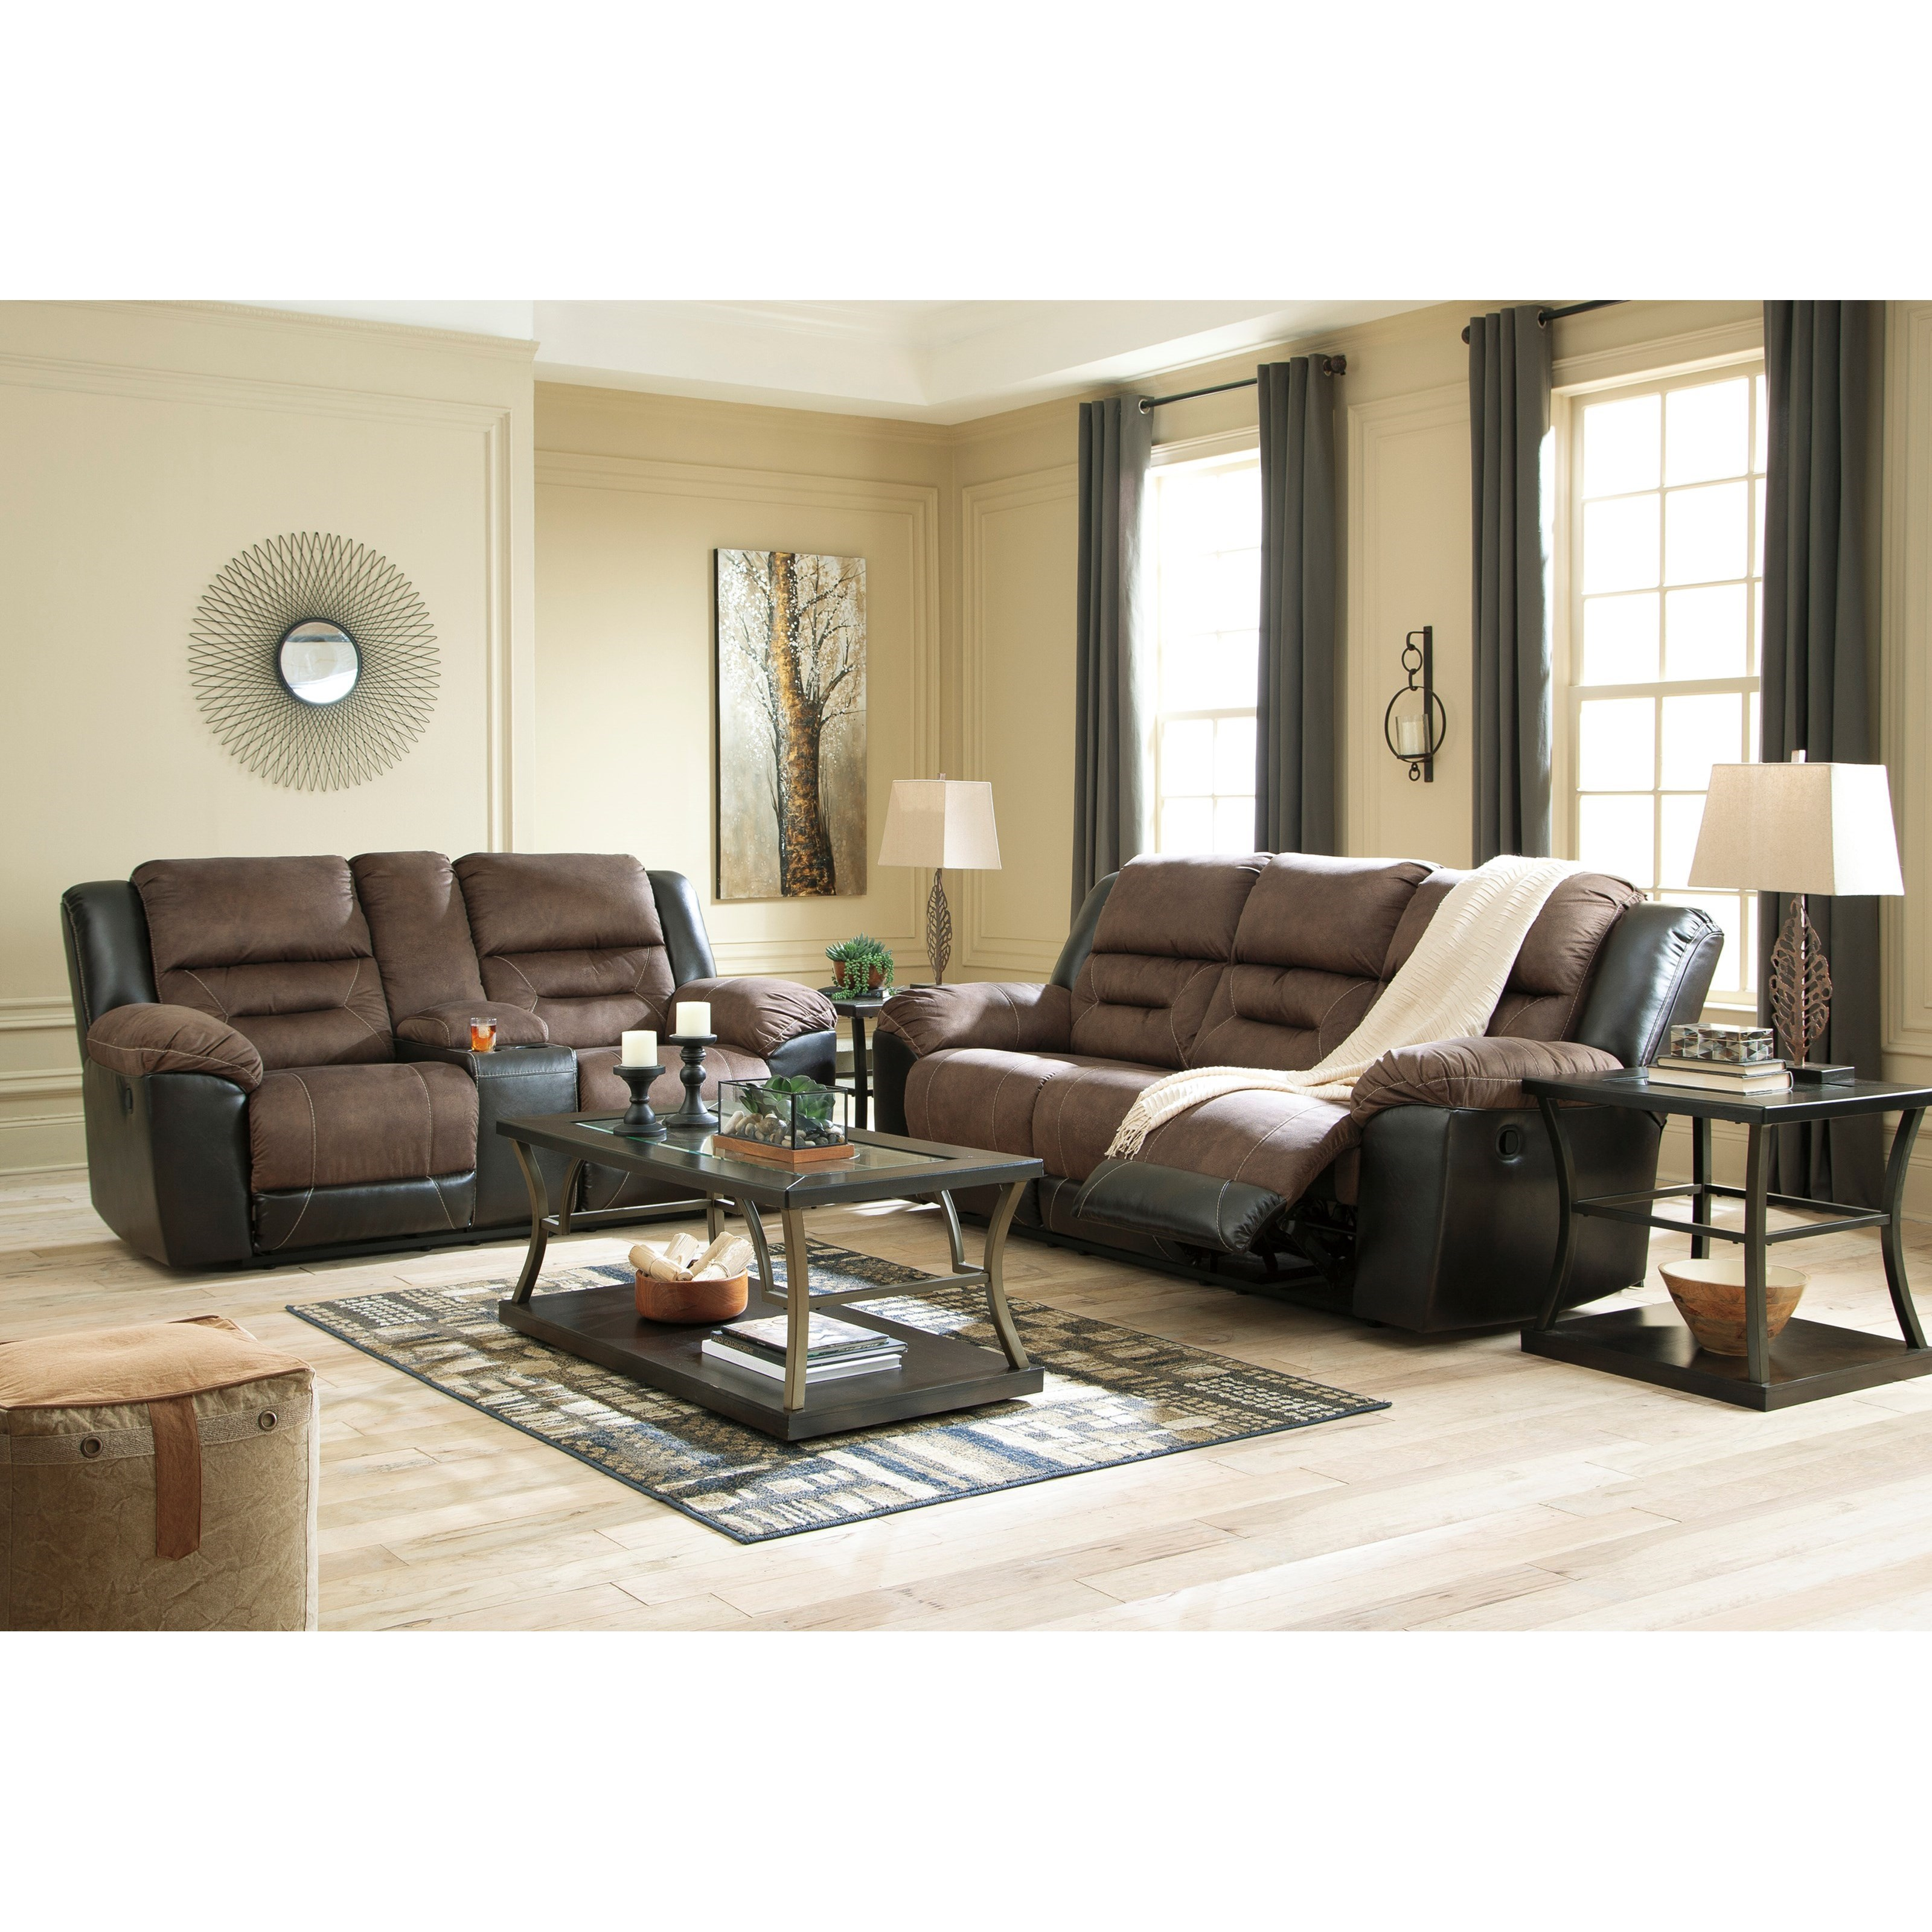 Earhart Reclining Living Room Group by Benchcraft at Virginia Furniture Market